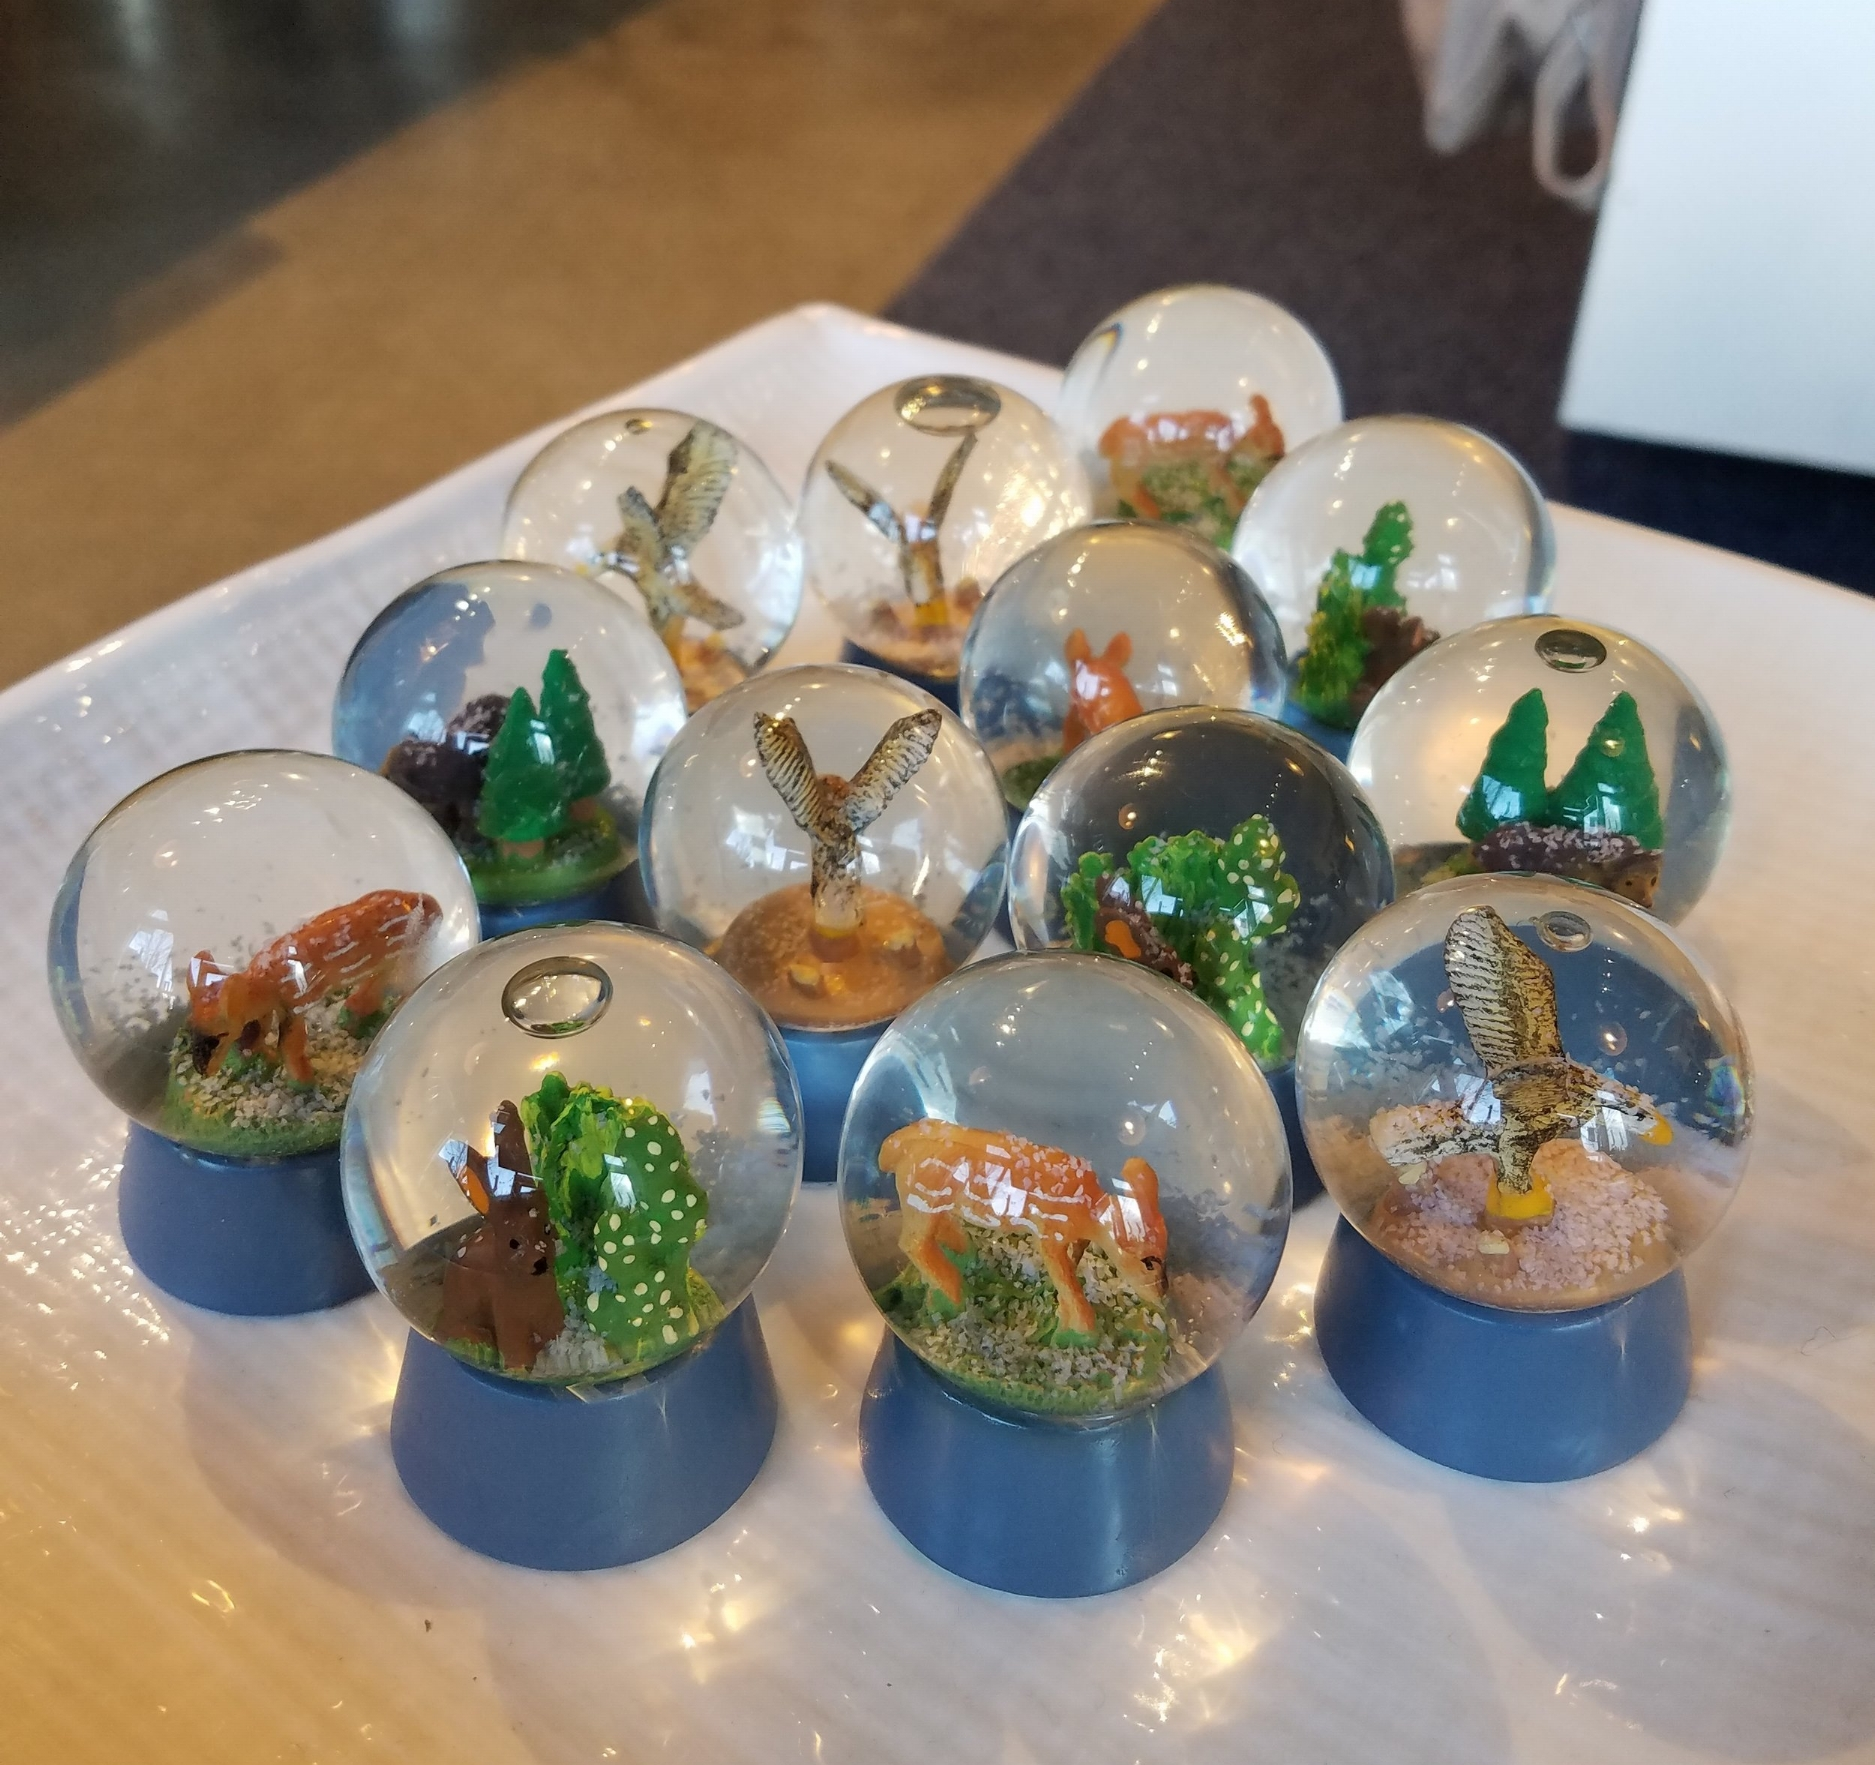 Snow Globes!!! Who doesn't love snow globes? These little guys are just $5.